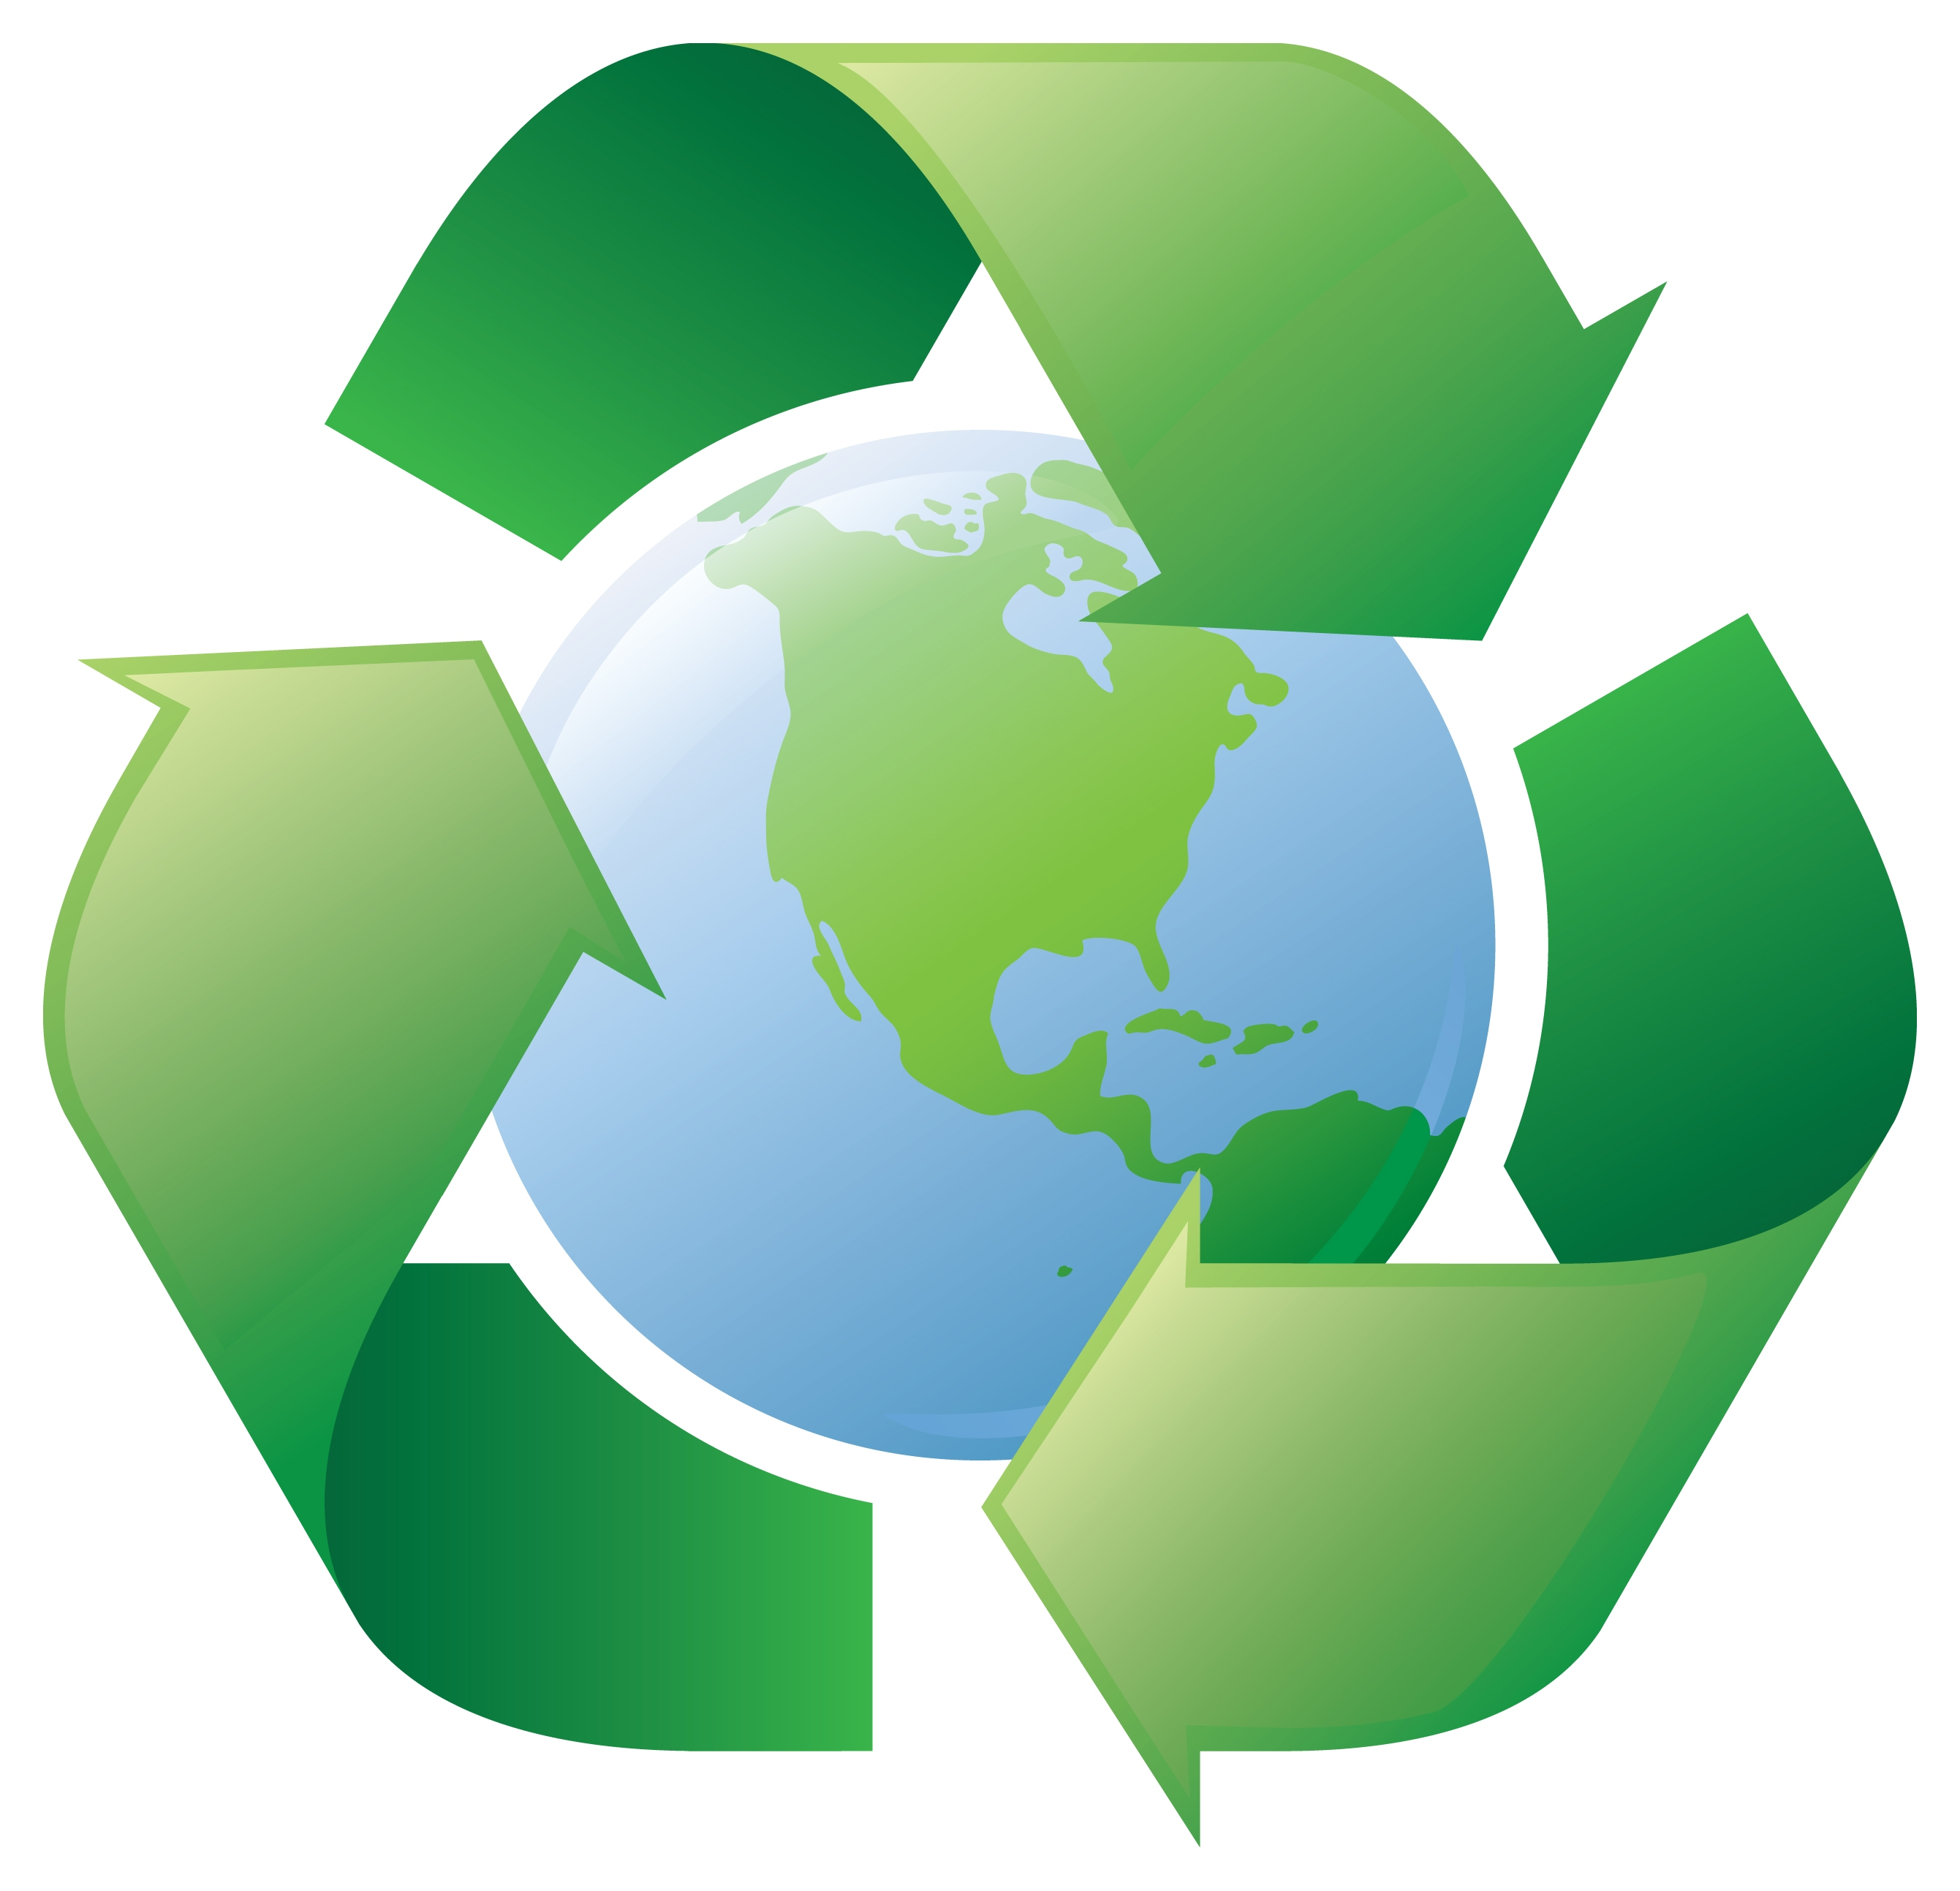 Green Day clipart recycle Recycle day jpg waste hazardous